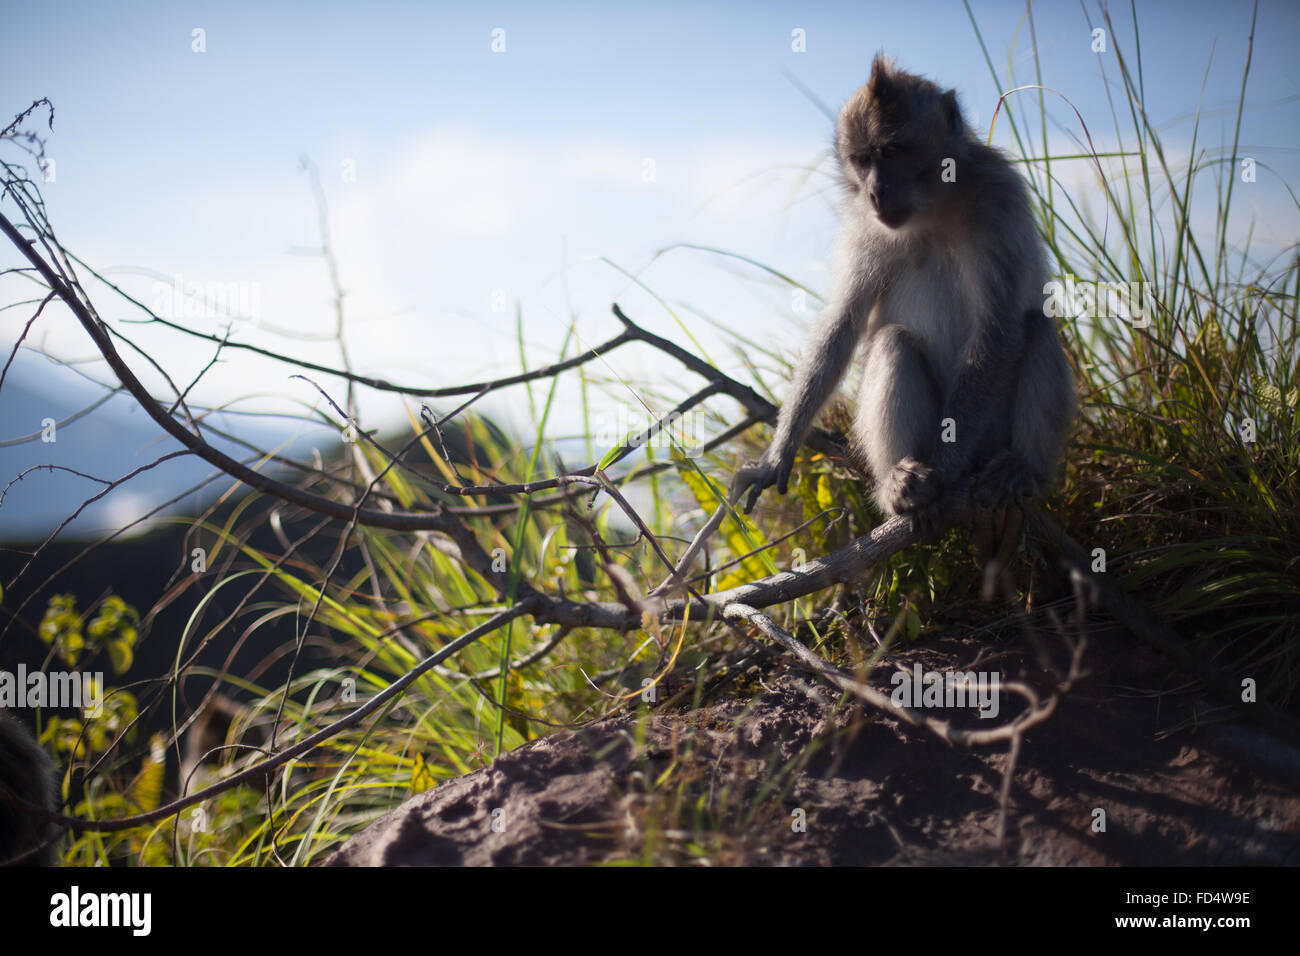 Monkey Grabbing Branch - Stock Image